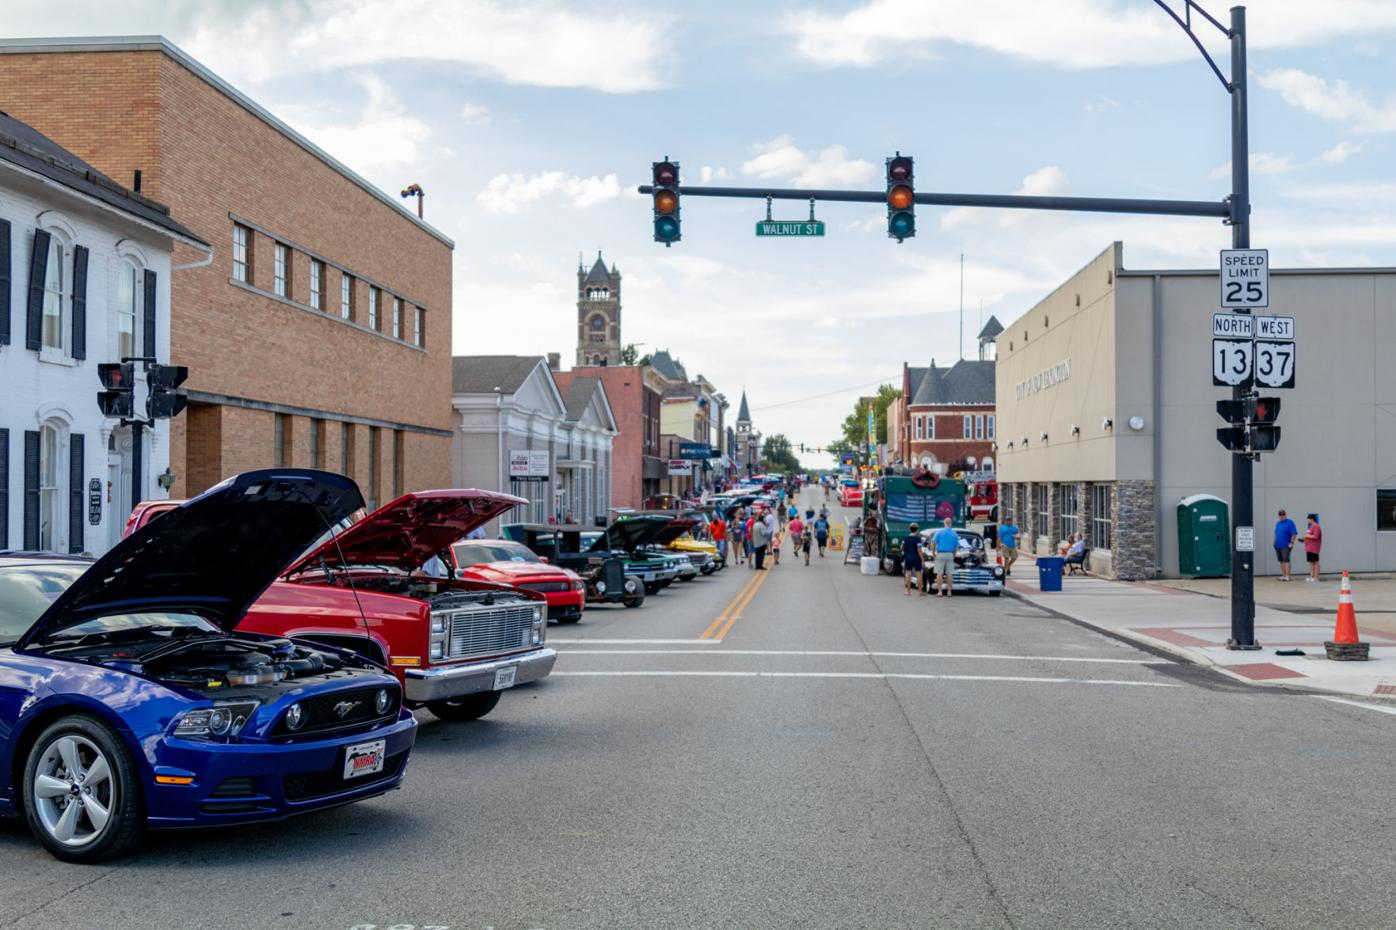 Cruise-in for a Cause